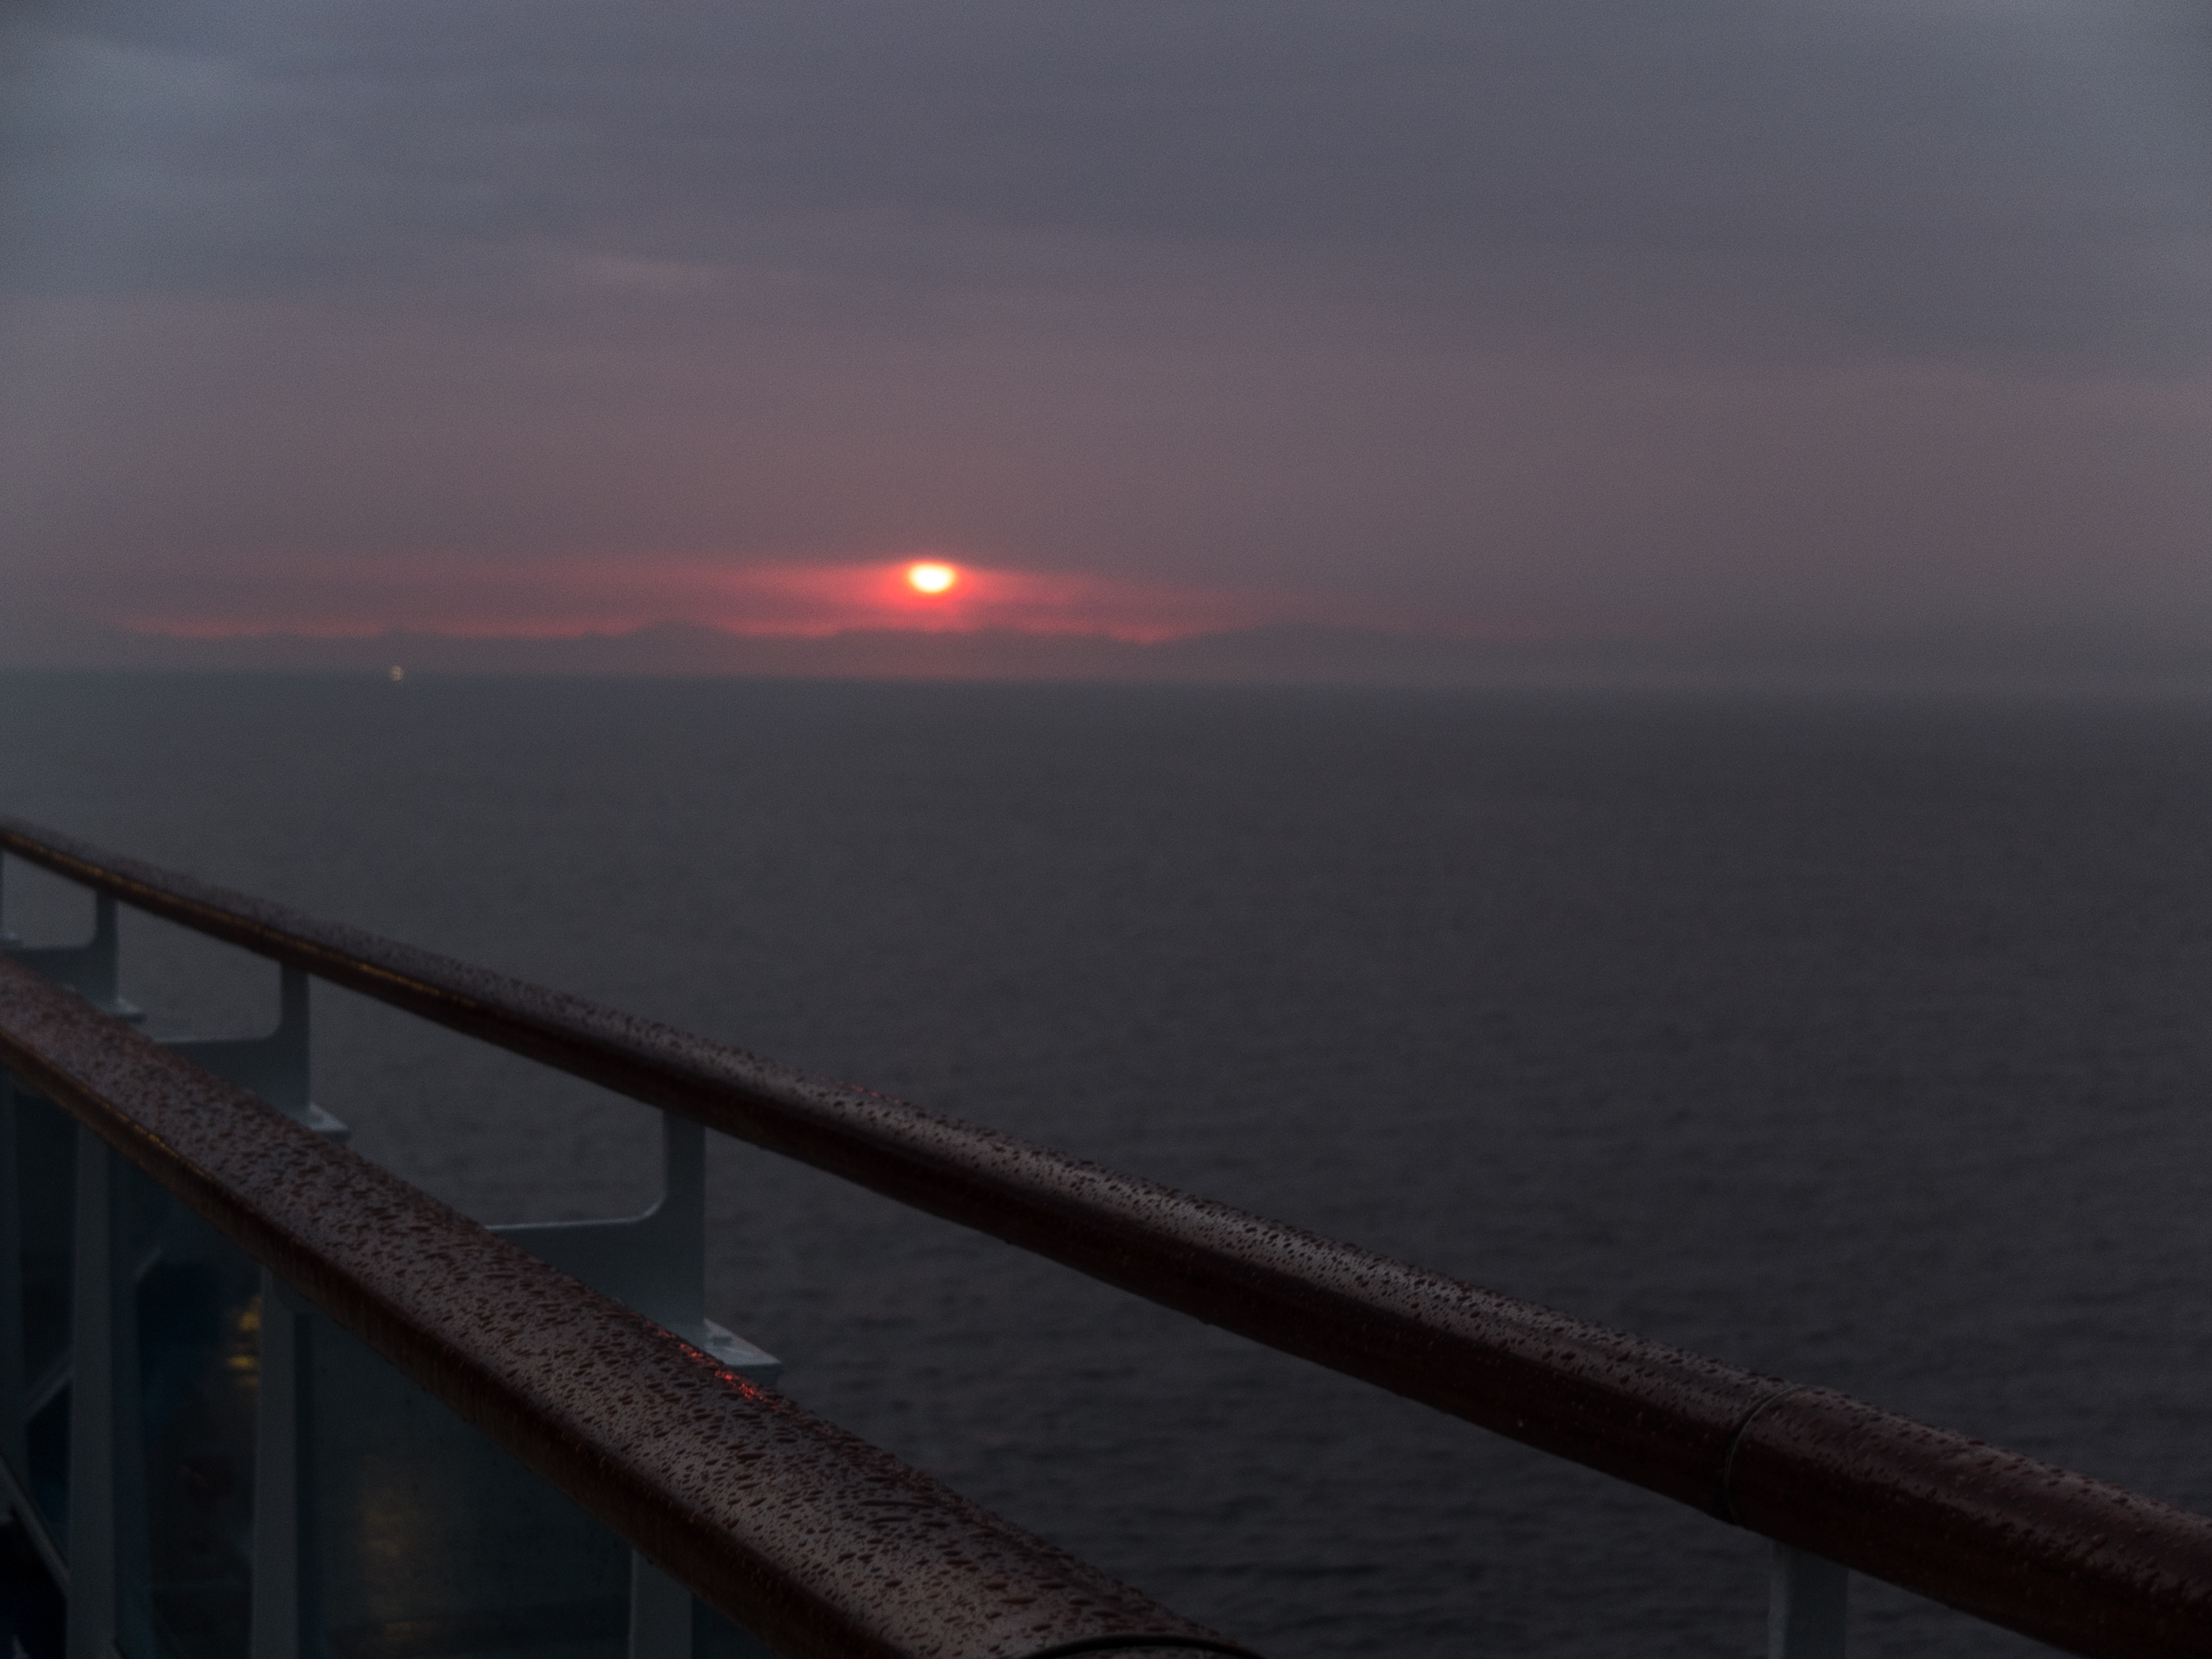 View of sunrise in the Strait of Gibraltar from a cruise ship.